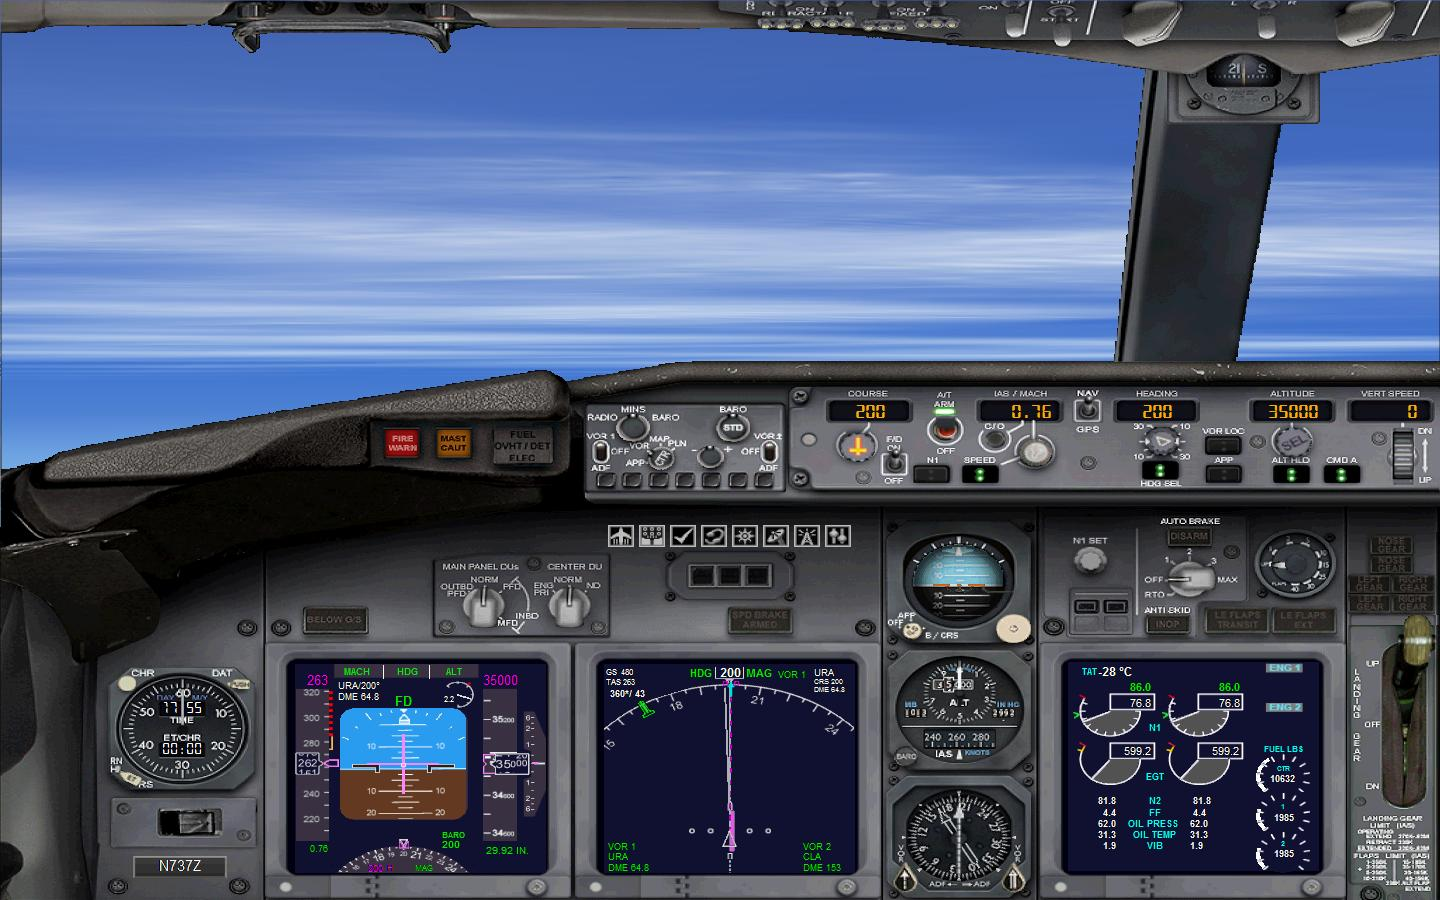 FSX_Home_Cockpits http://flyawaysimulation.com/images/media/6211/cockpit/